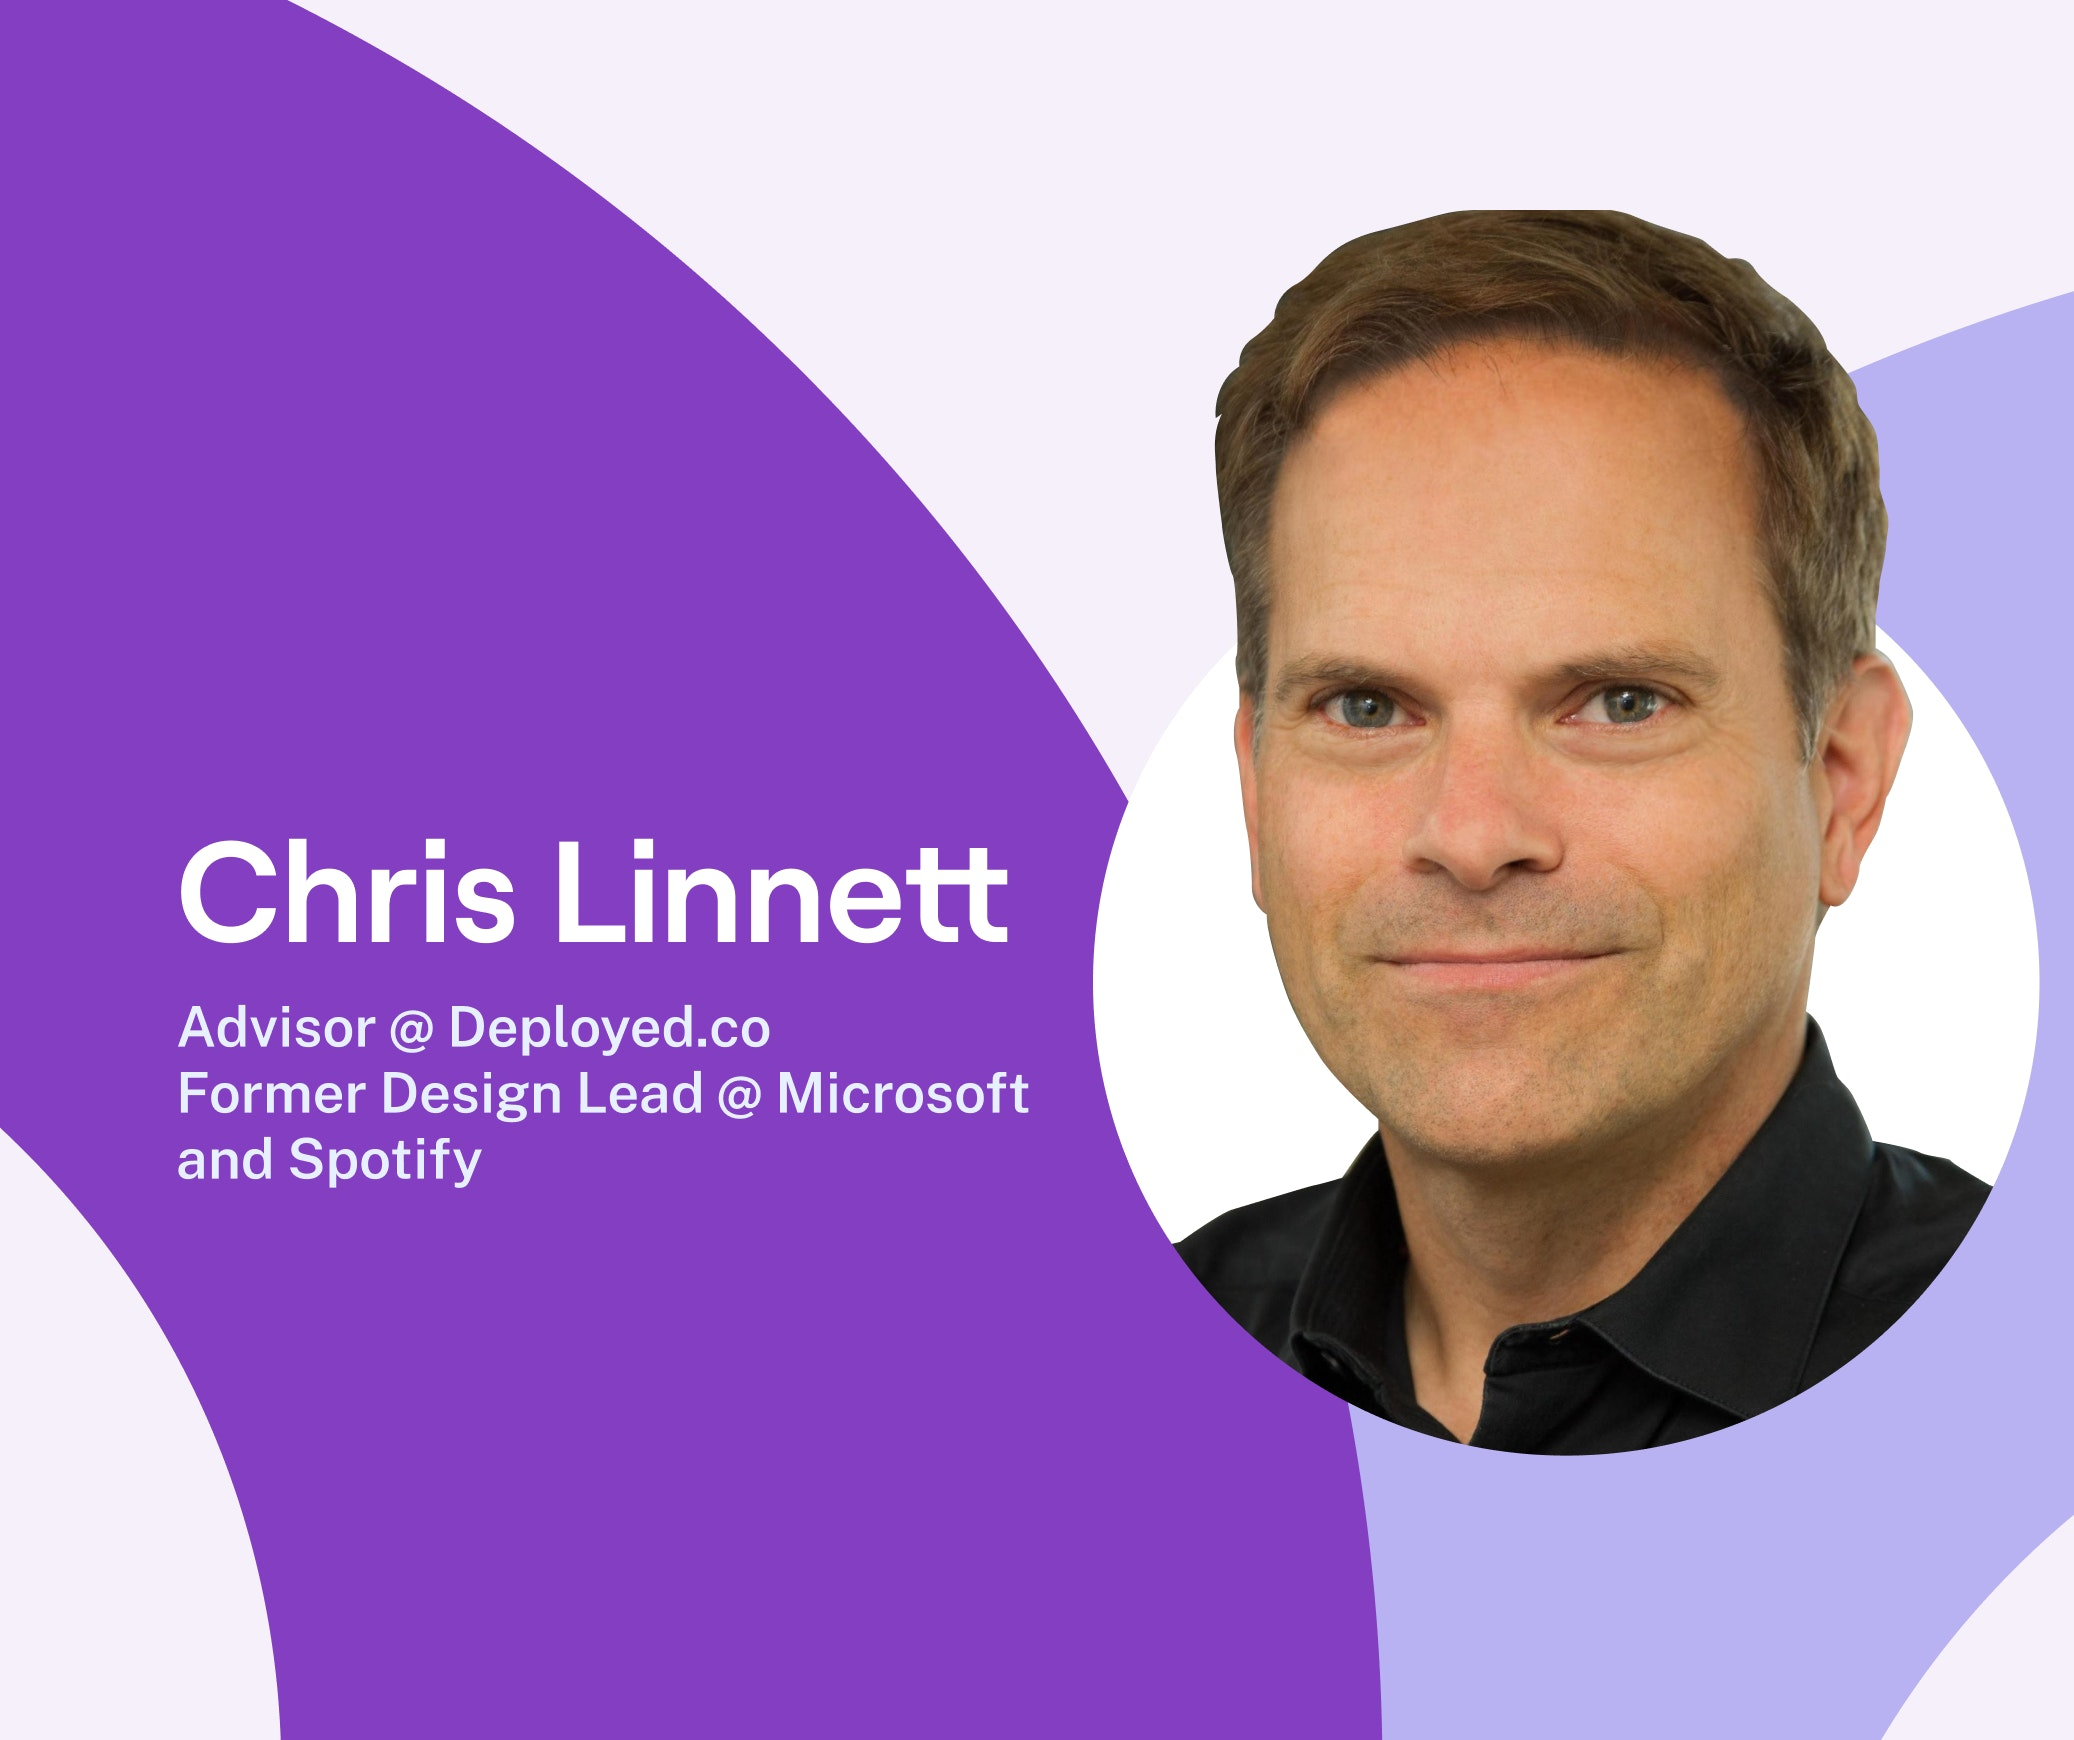 Why data should inform your design, not drive it: inside stories from former Microsoft & Spotify design lead, Chris Linnett